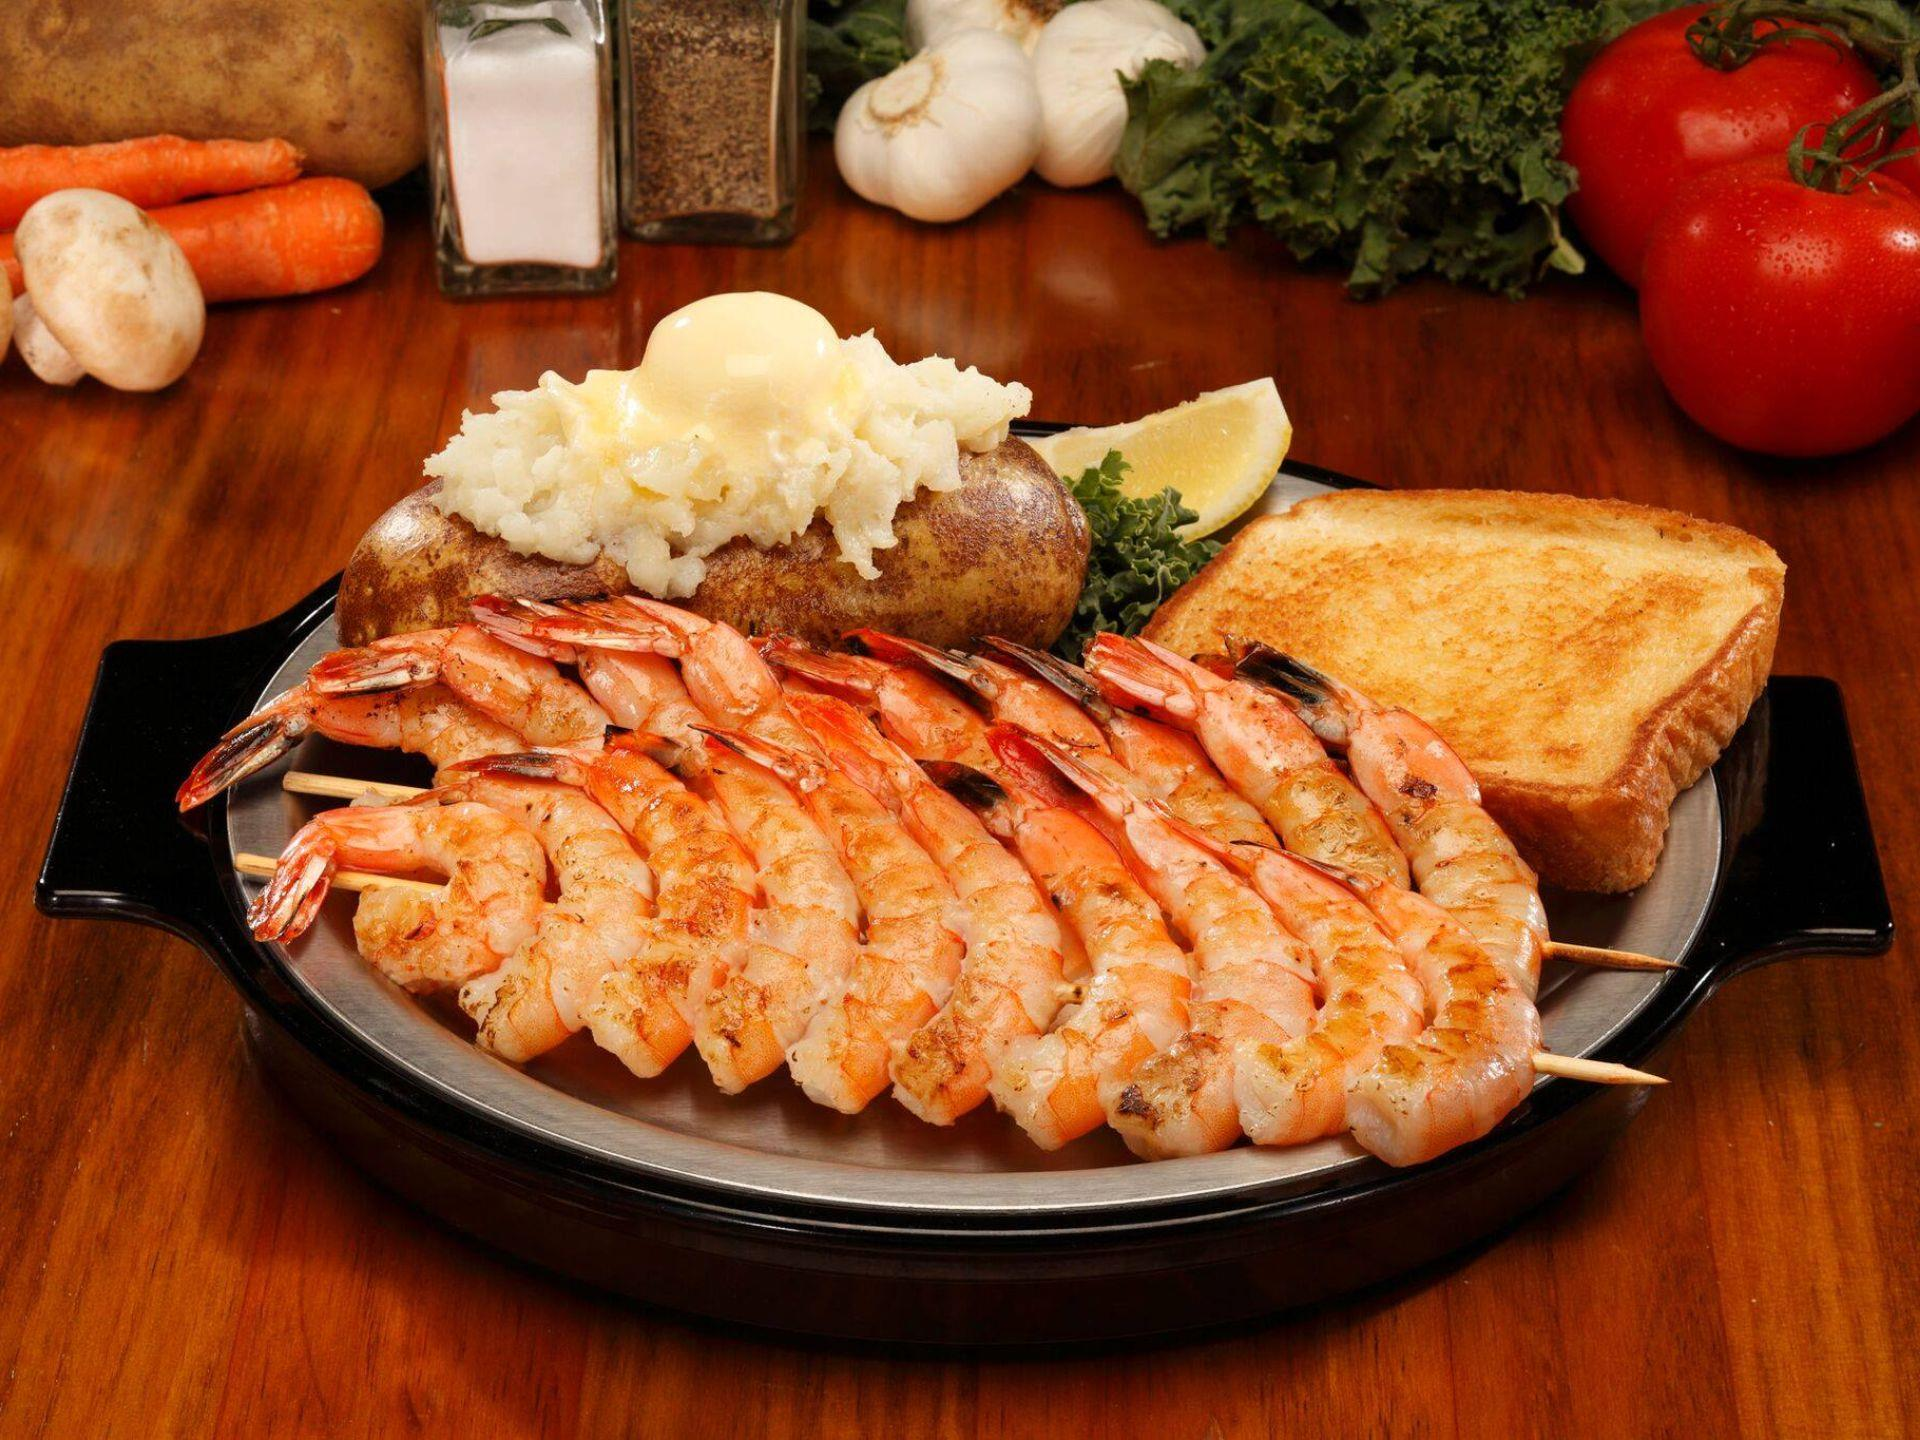 Shrimp skewers with baked potato and Texas toast